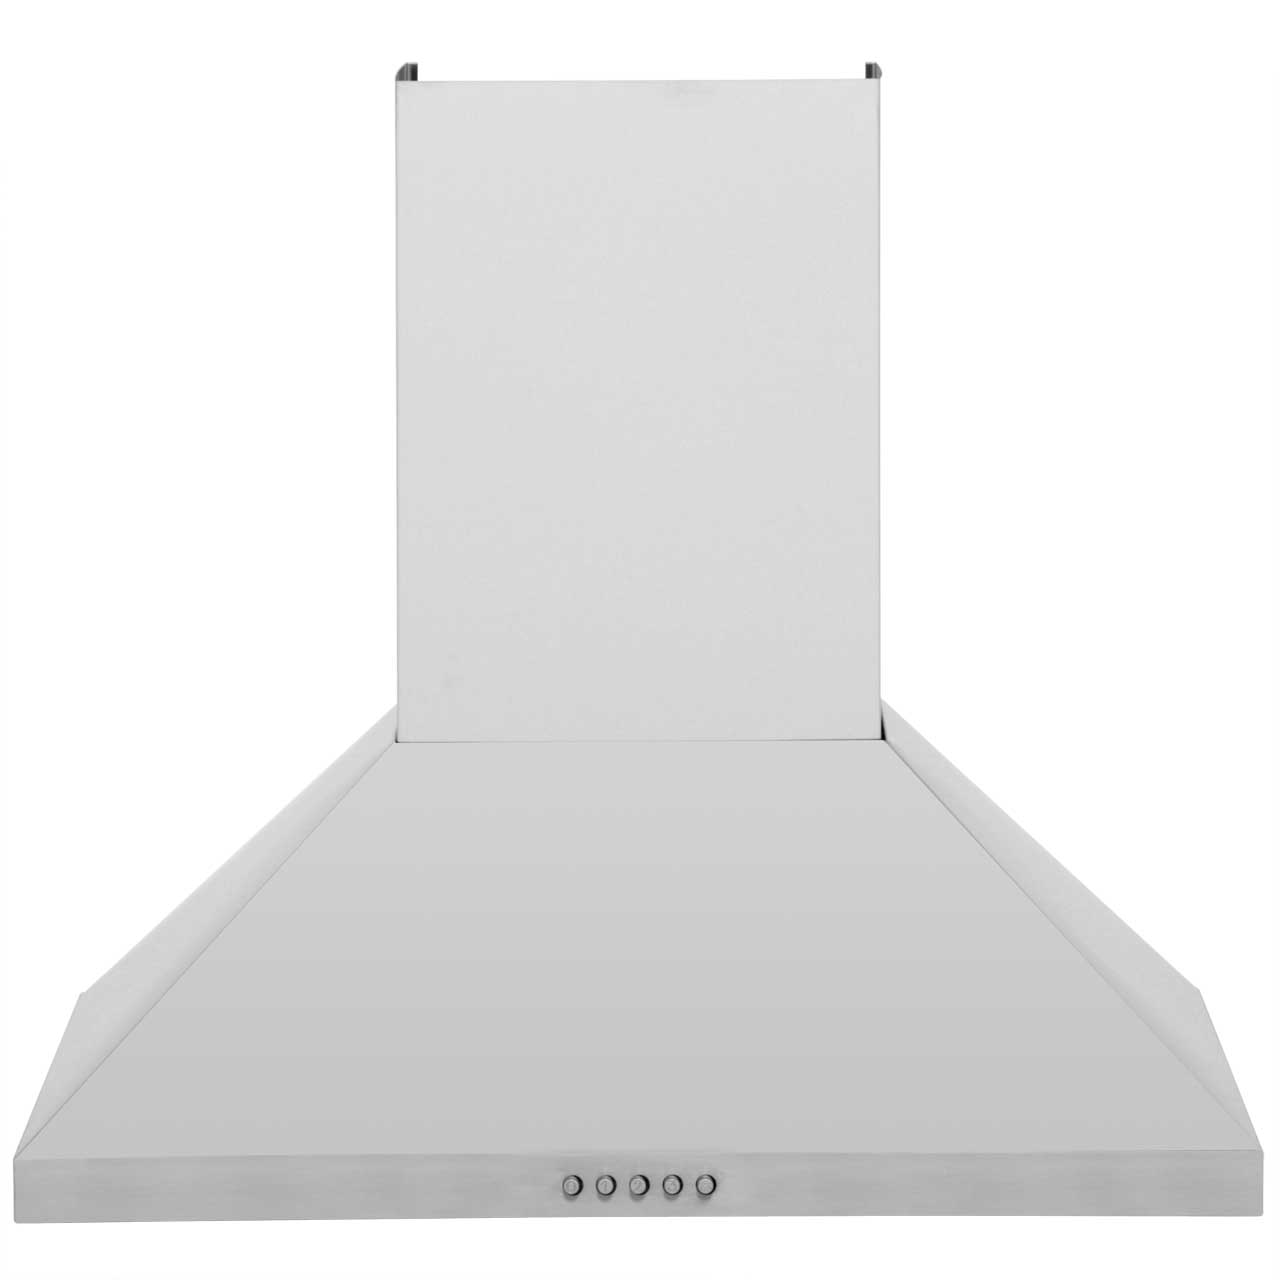 Beko HB60PX 60 cm Chimney Cooker Hood - Stainless Steel